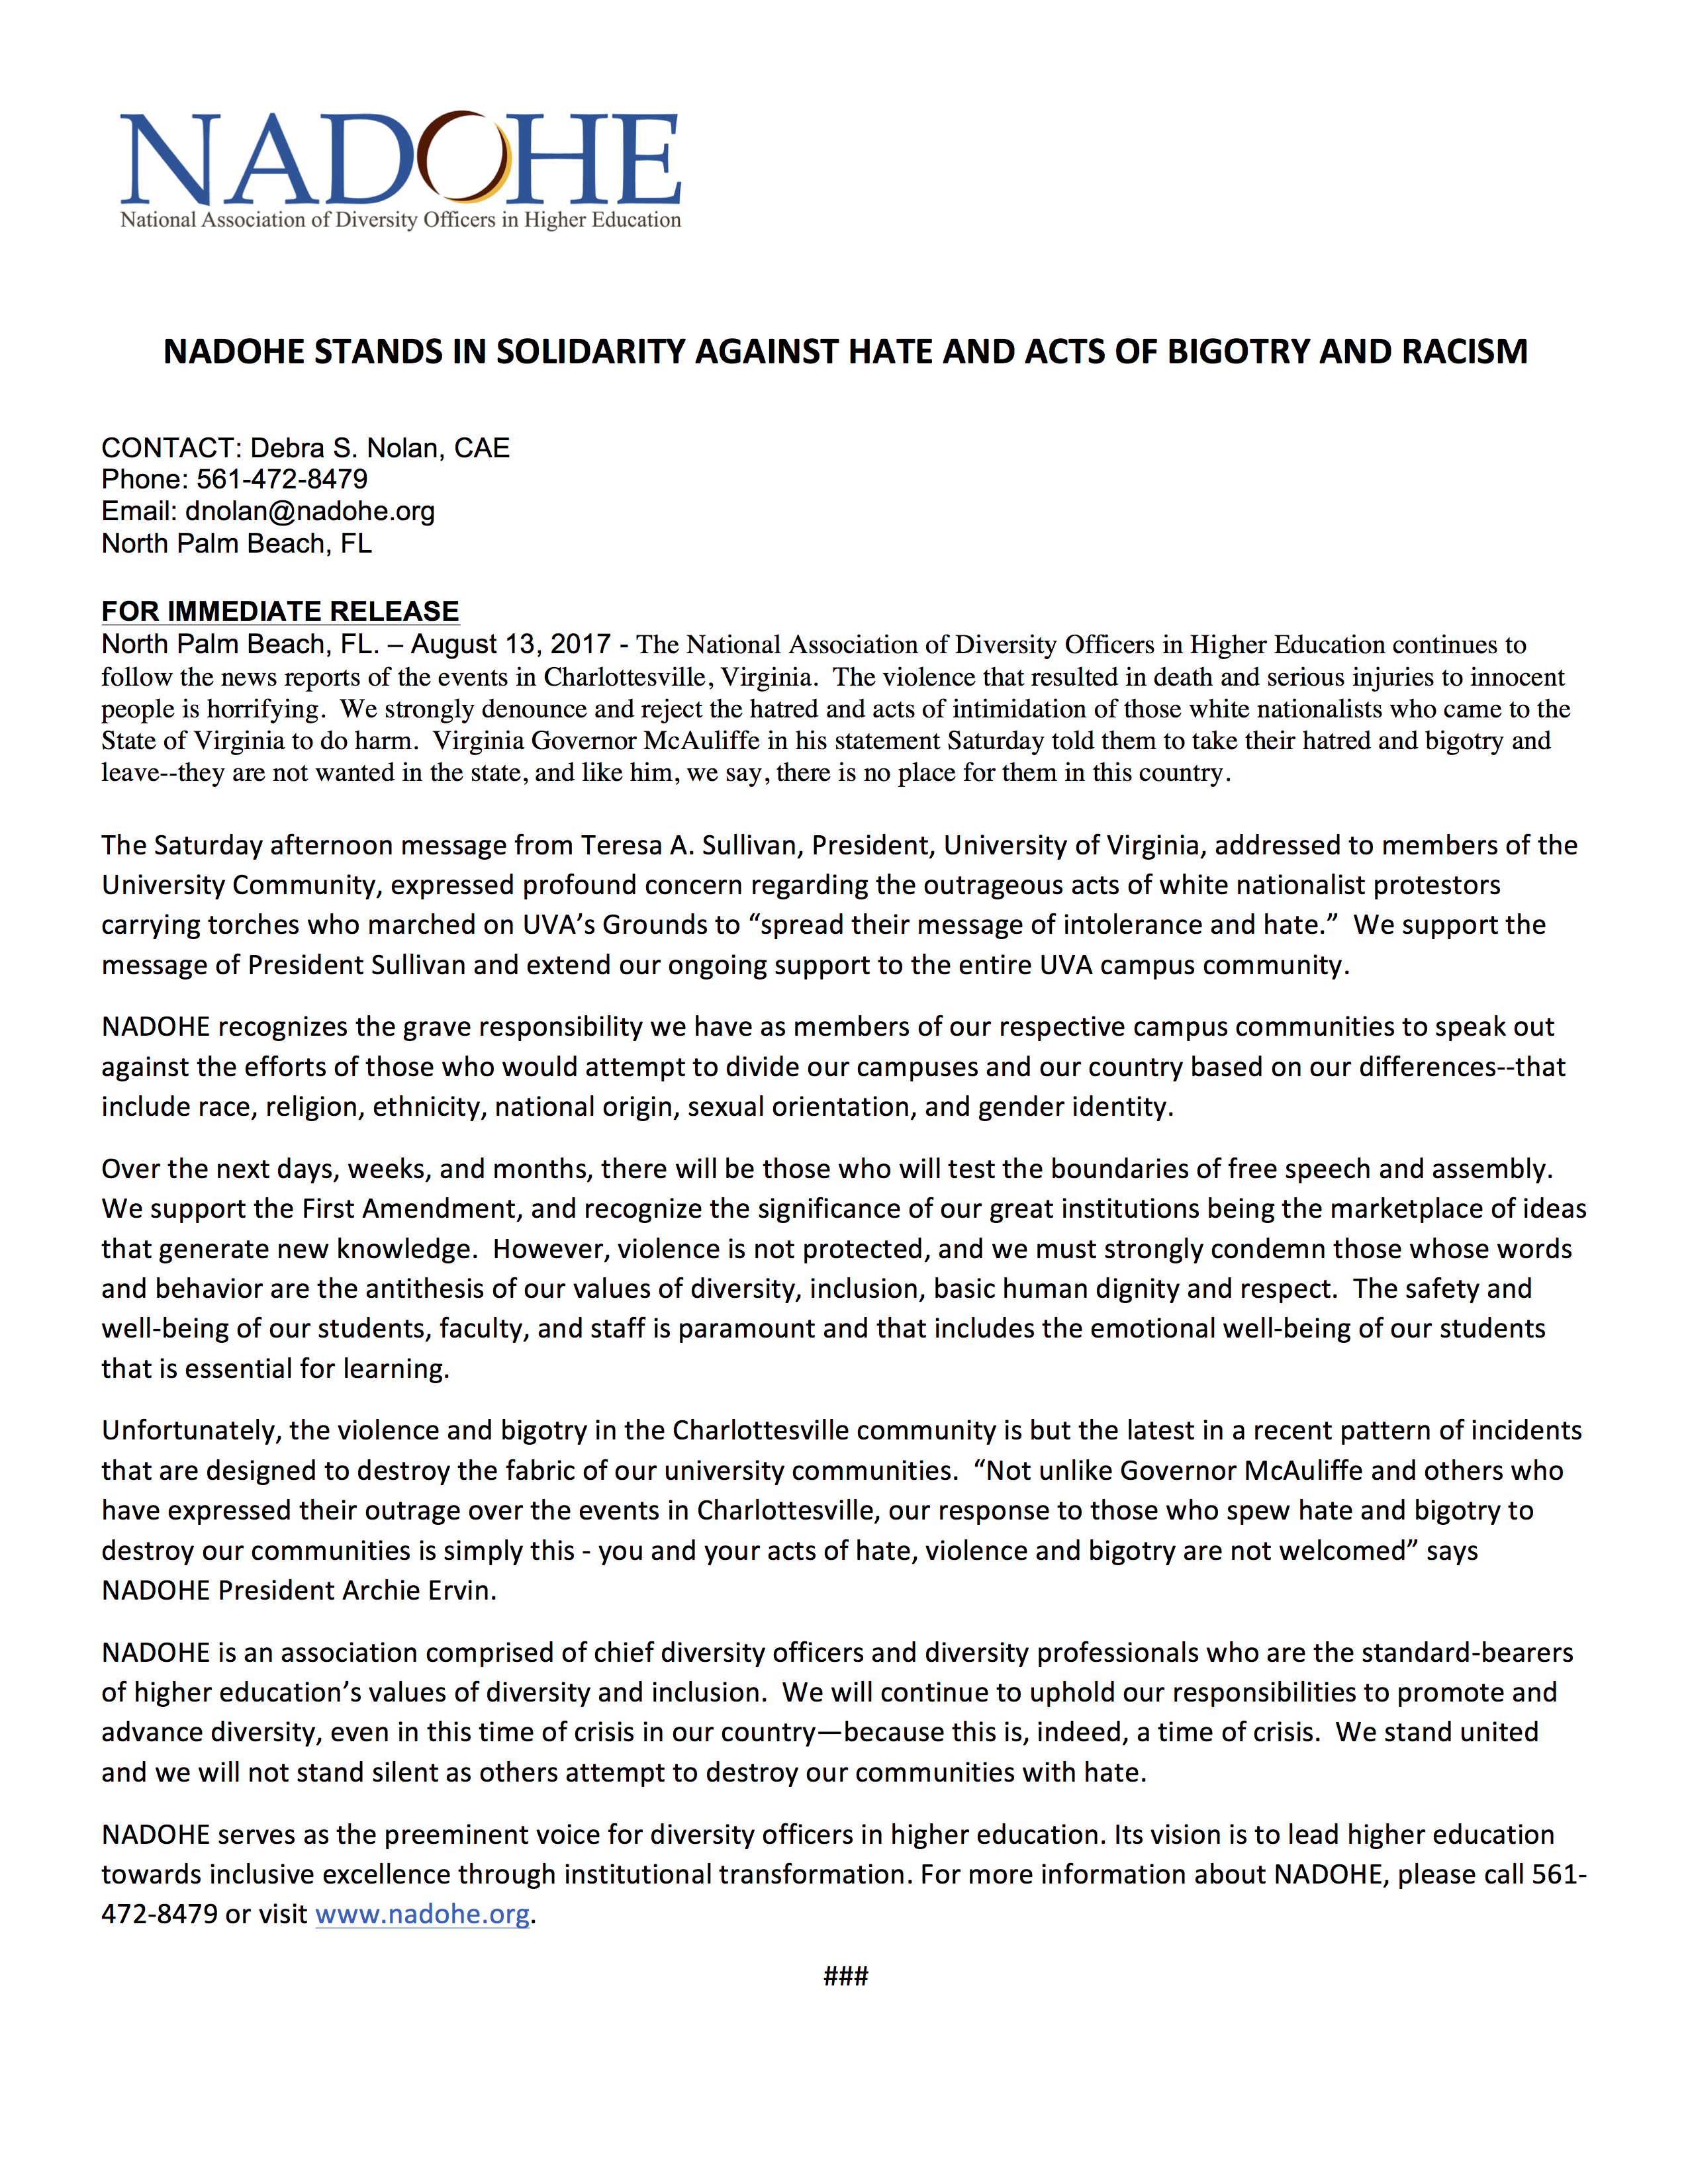 NADOHE statement against hate and acts of bigotry and racism